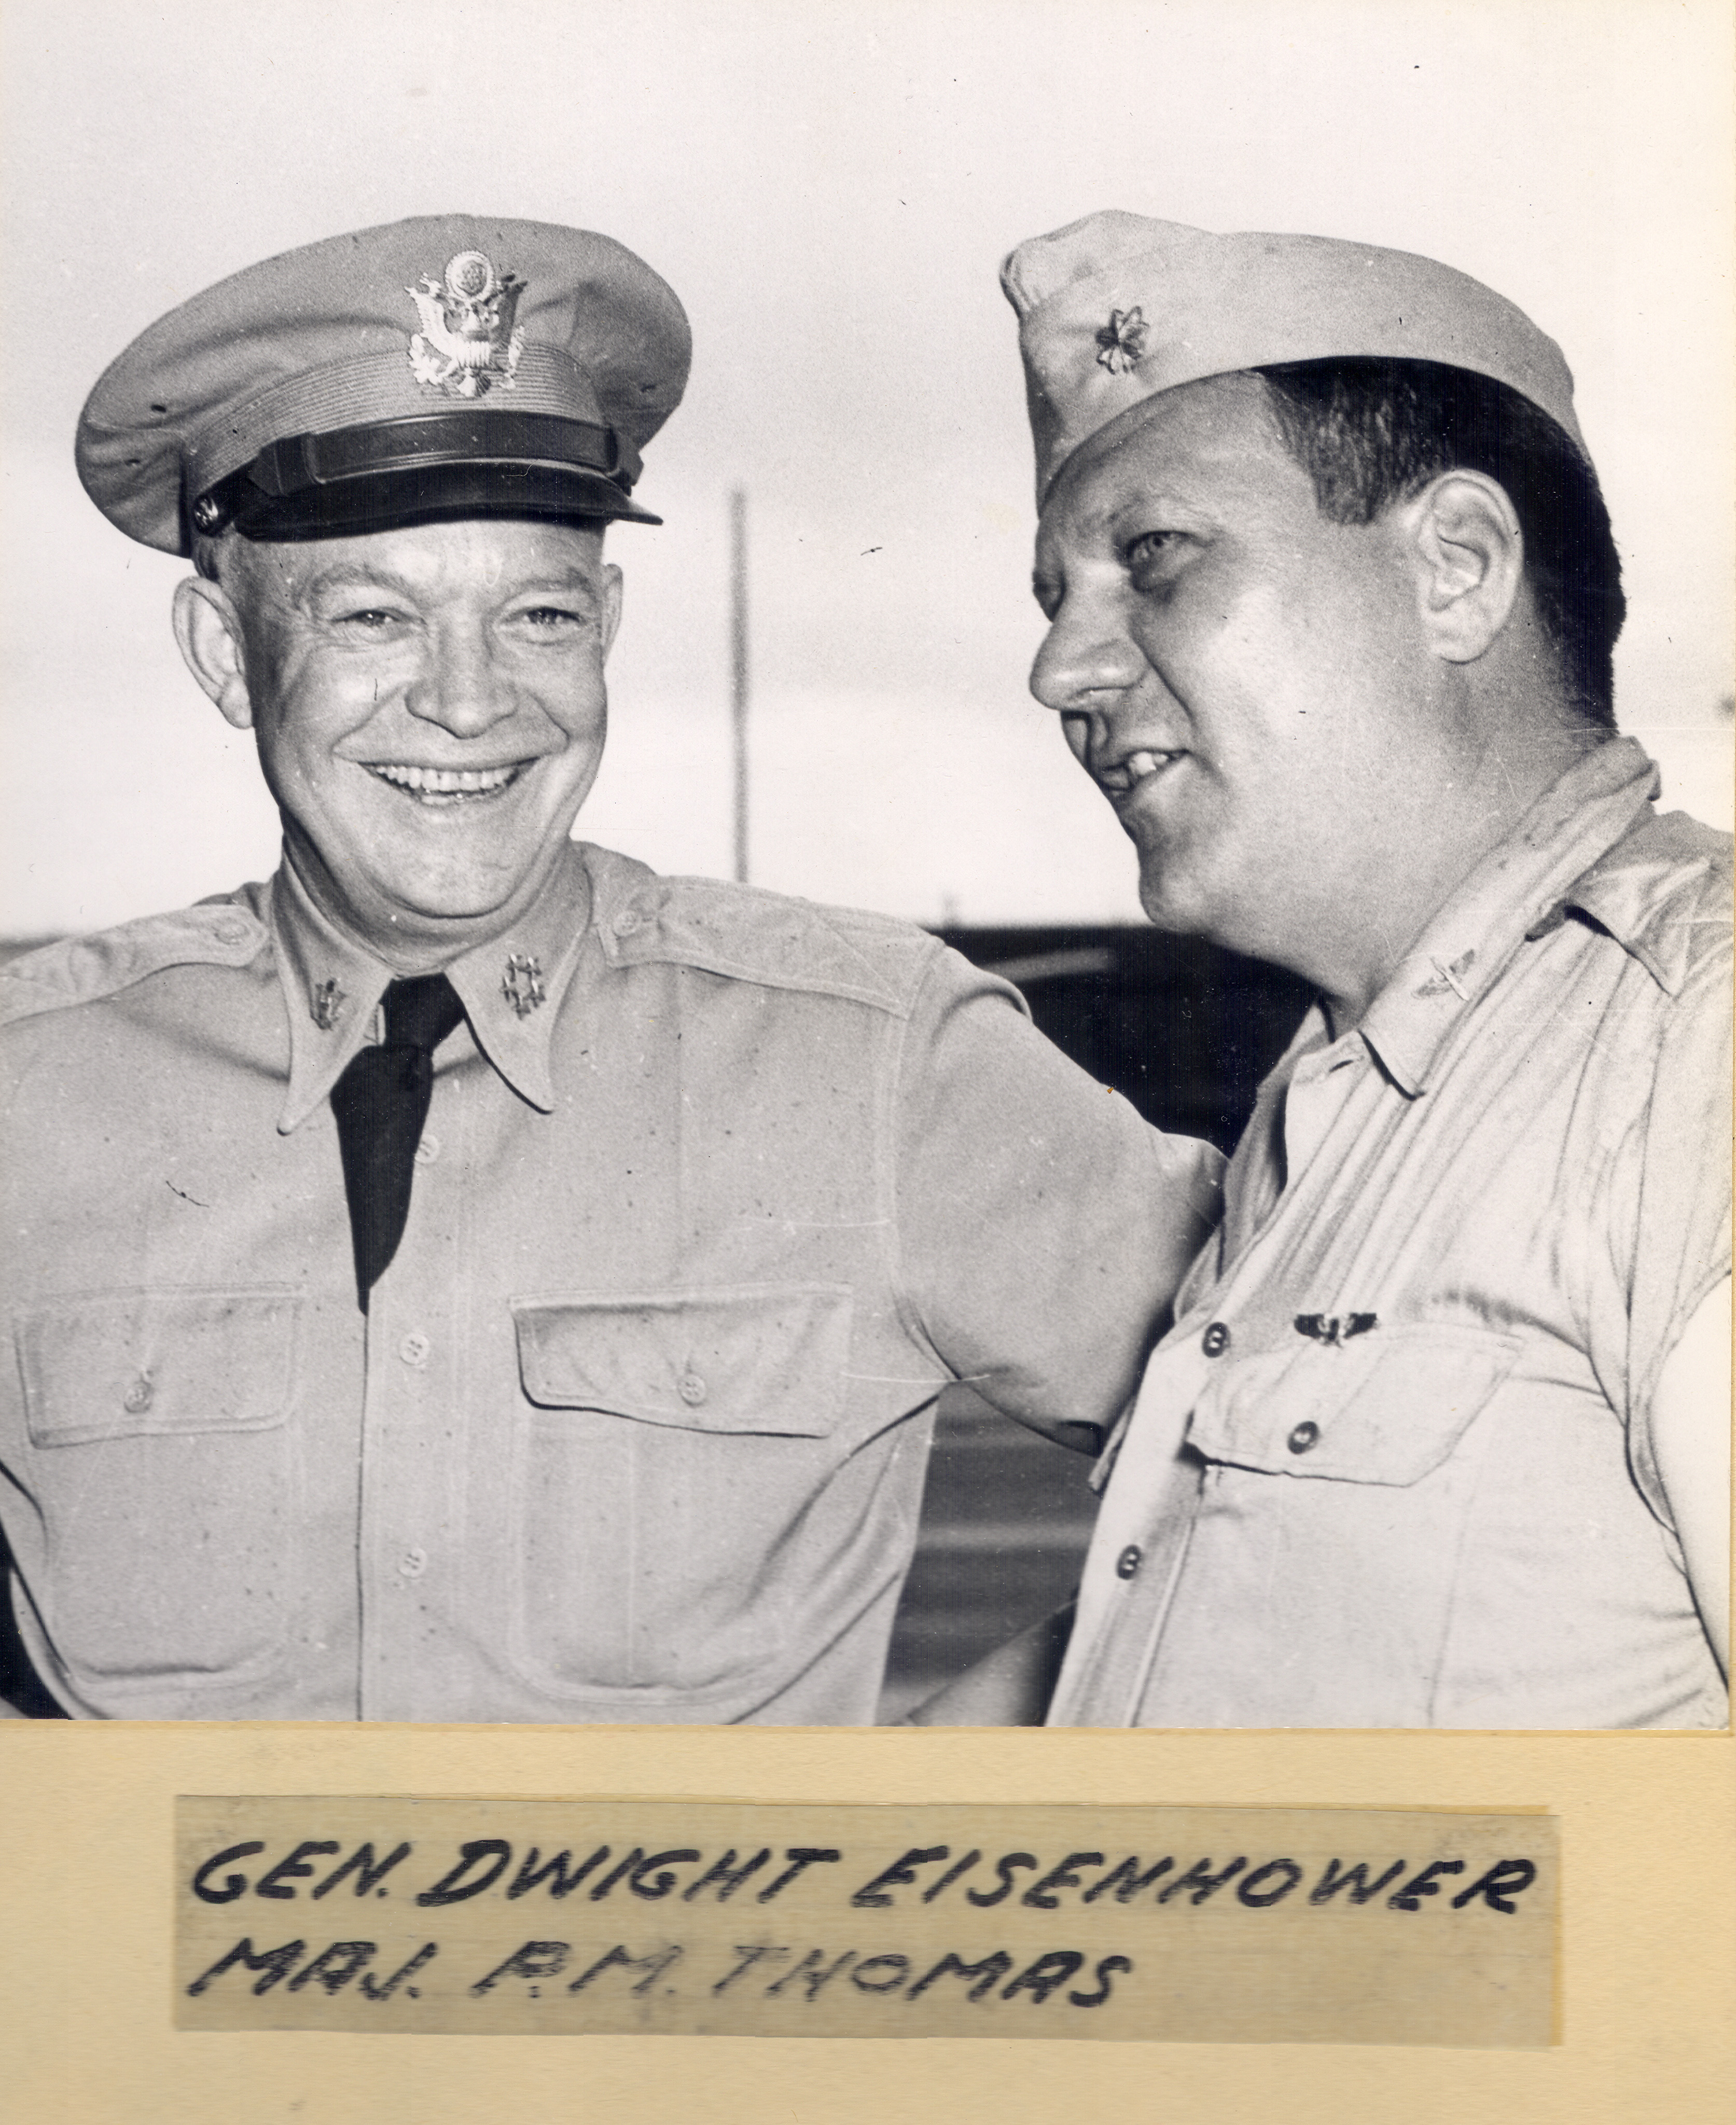 General Dwight Eisenhower and Major Perry M. Thomas, 1945-1946